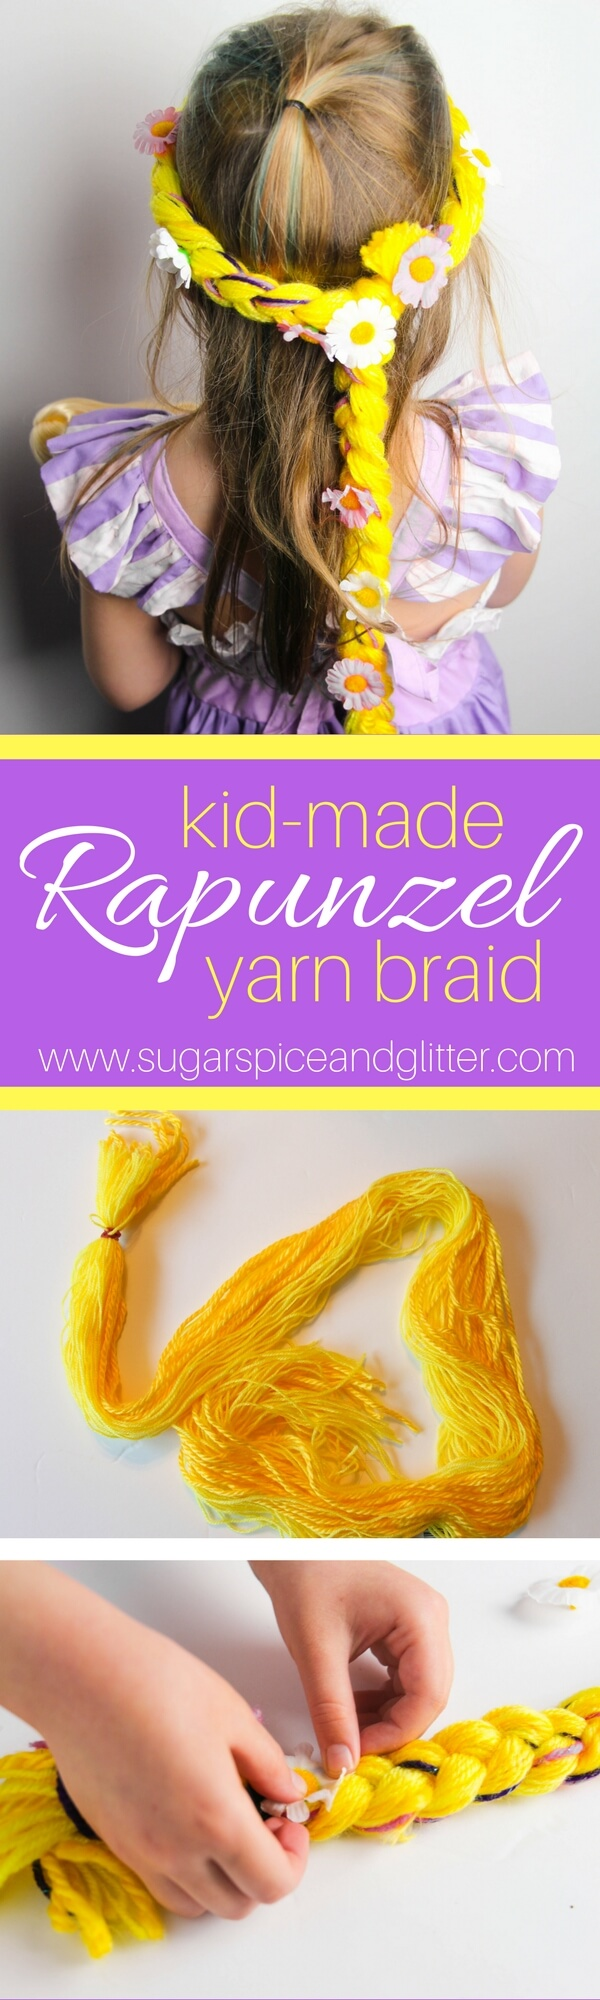 An easy Disney-inspired craft for kids, this Rapunzel yarn braid can be made with just about any color of leftover yarn - white for Elsa, red for Ariel, brown for Belle. A great movie night craft or homemade costume idea